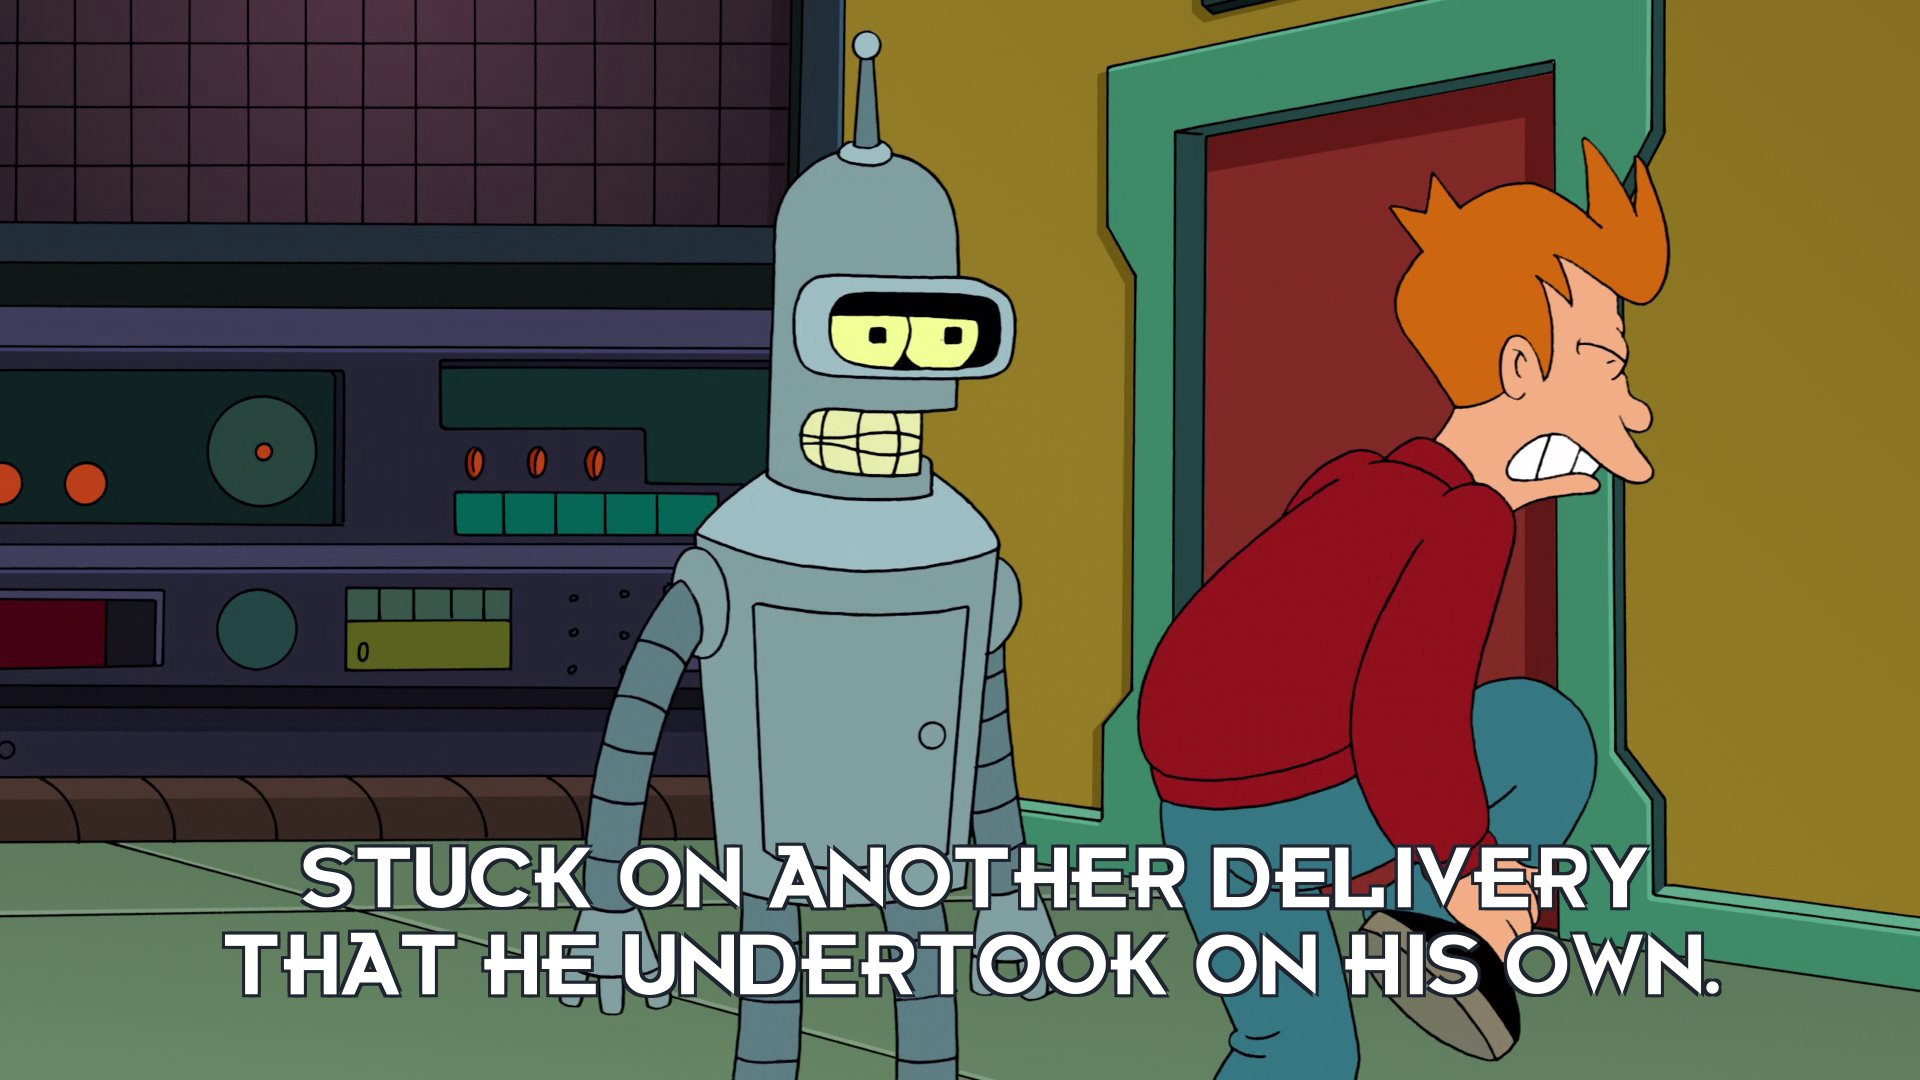 Bender Bending Rodriguez: Stuck on another delivery that he undertook on his own.